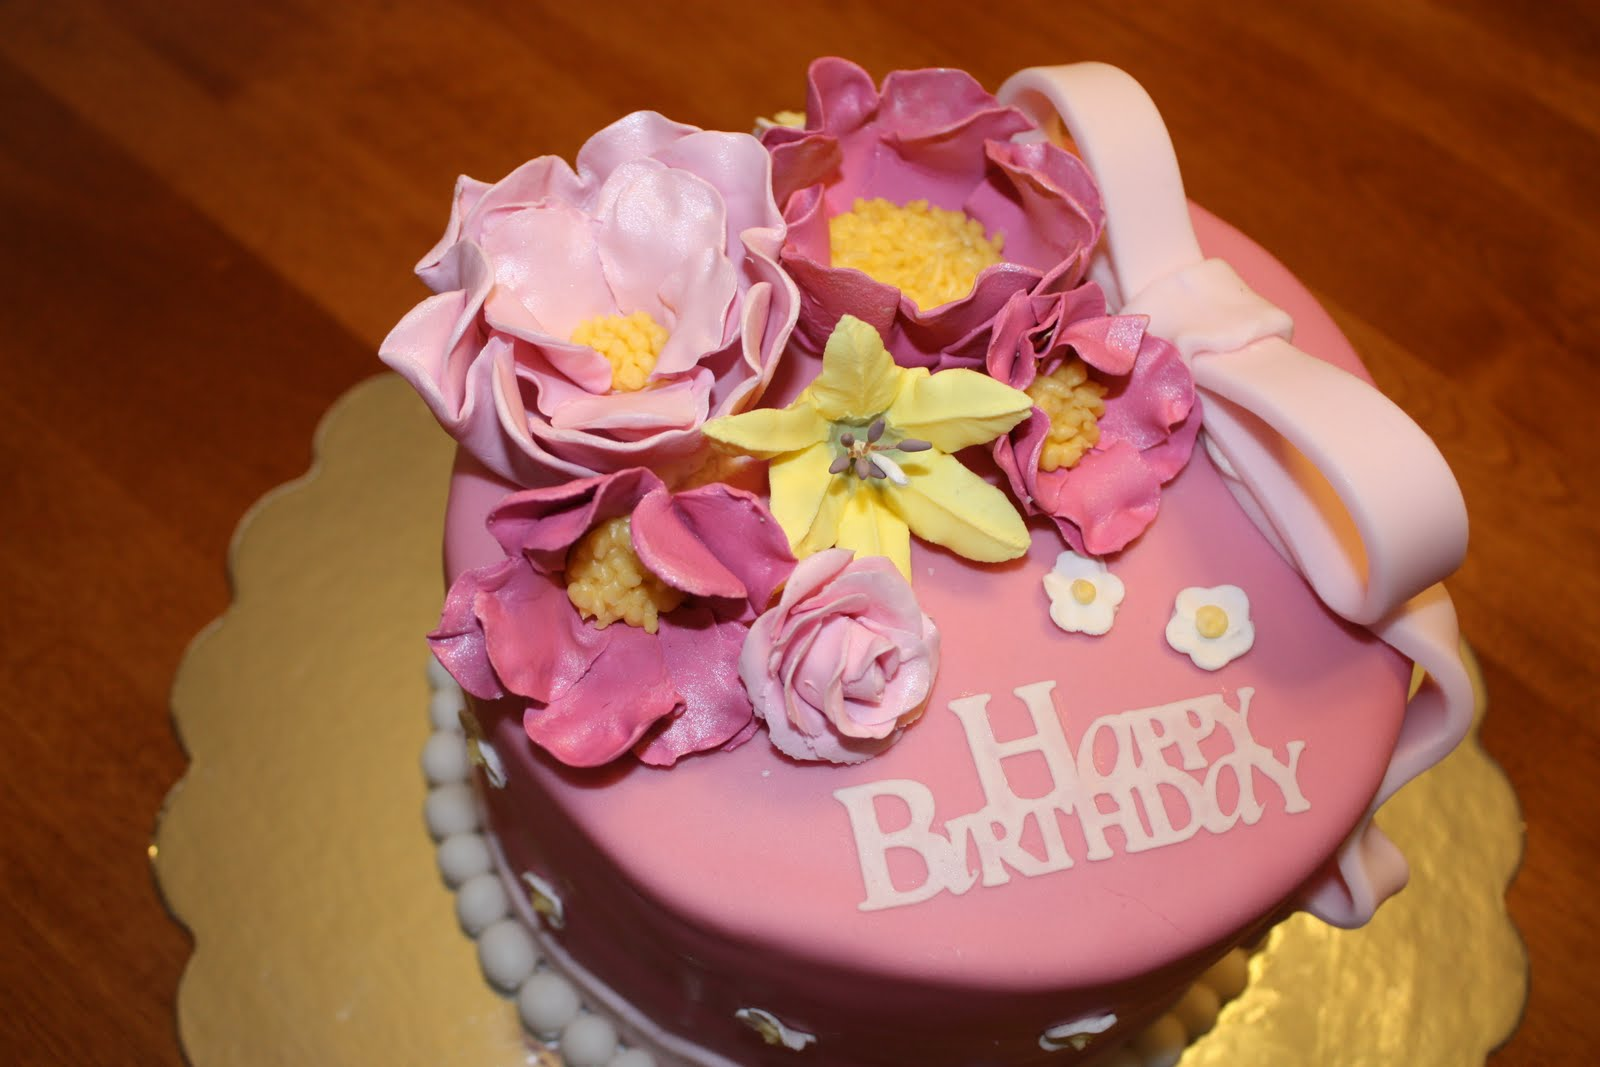 Happy Birthday Cake And Flower For The Special Person